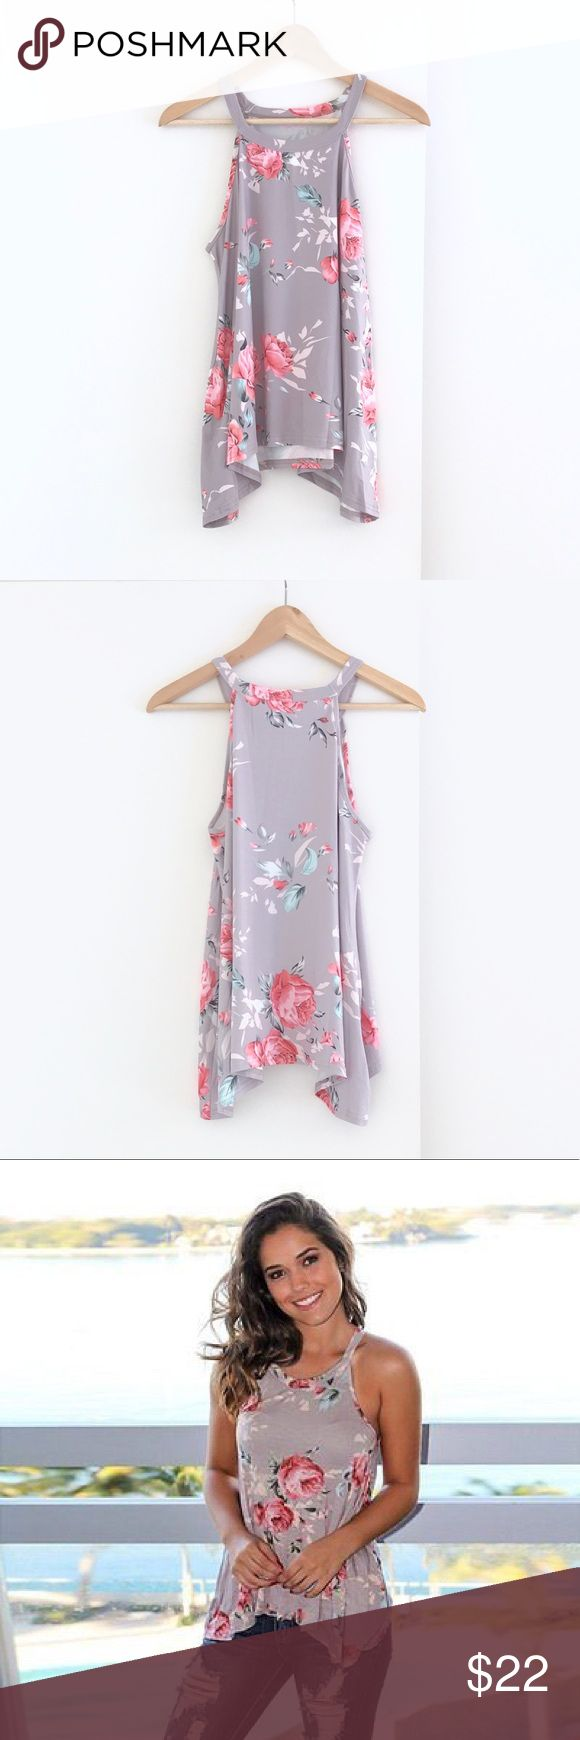 """🆕 Floral Tank Top This beautiful flowy floral tank top is made of a super soft milk fiber material. Measurements: Bust- 33"""", Length- 22.5"""" from shoulder right next to neck down to bottom of tank top & 24"""" down to the longer outer edges.  Slightly sheer so best worn with a nude color bandeau or bra.  NWOT Tops Tank Tops"""